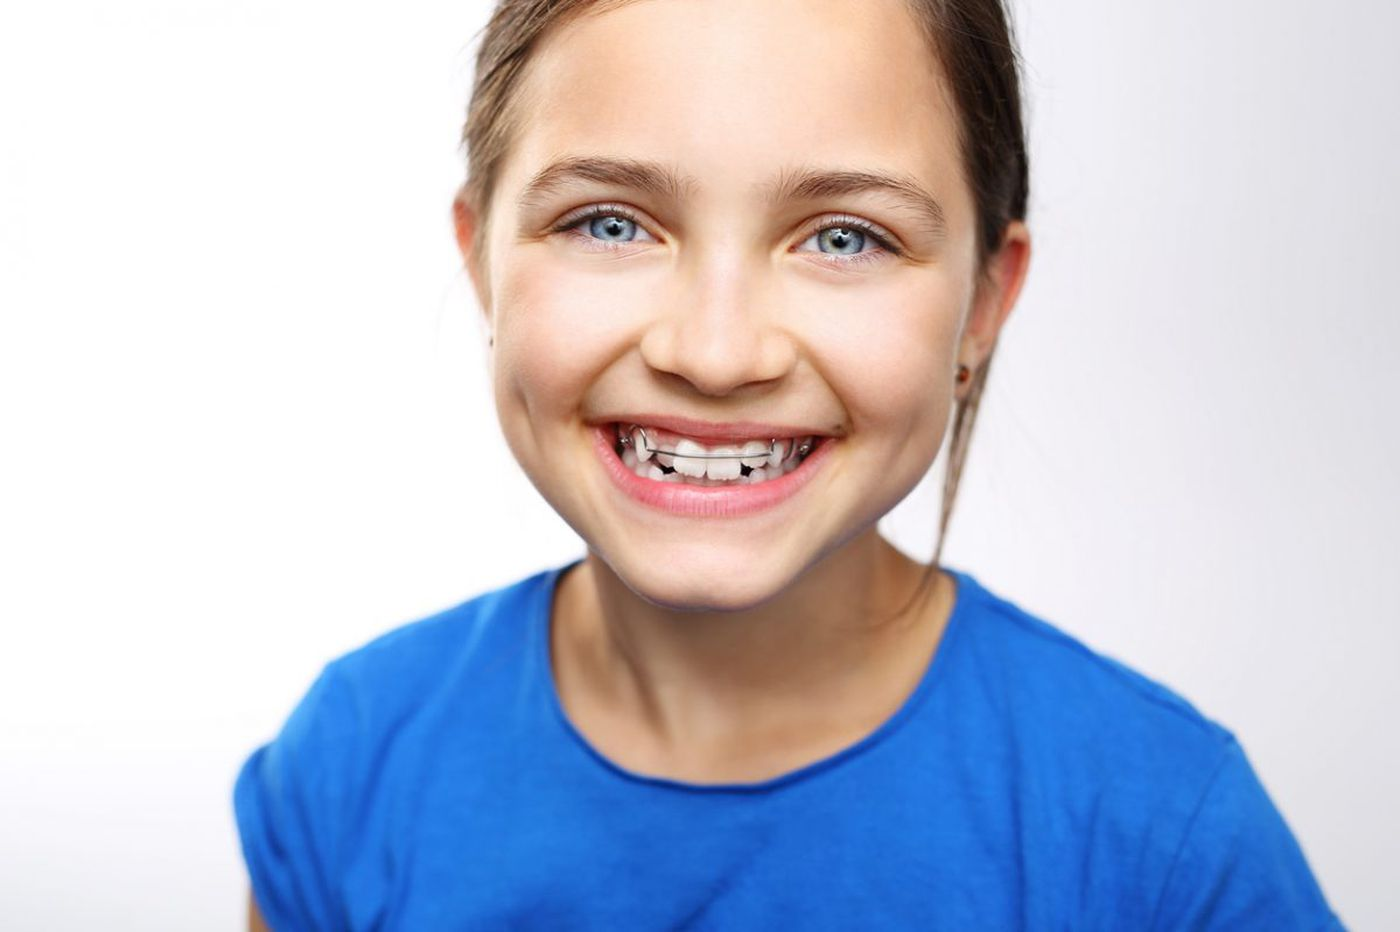 What's the latest in orthodontic care?